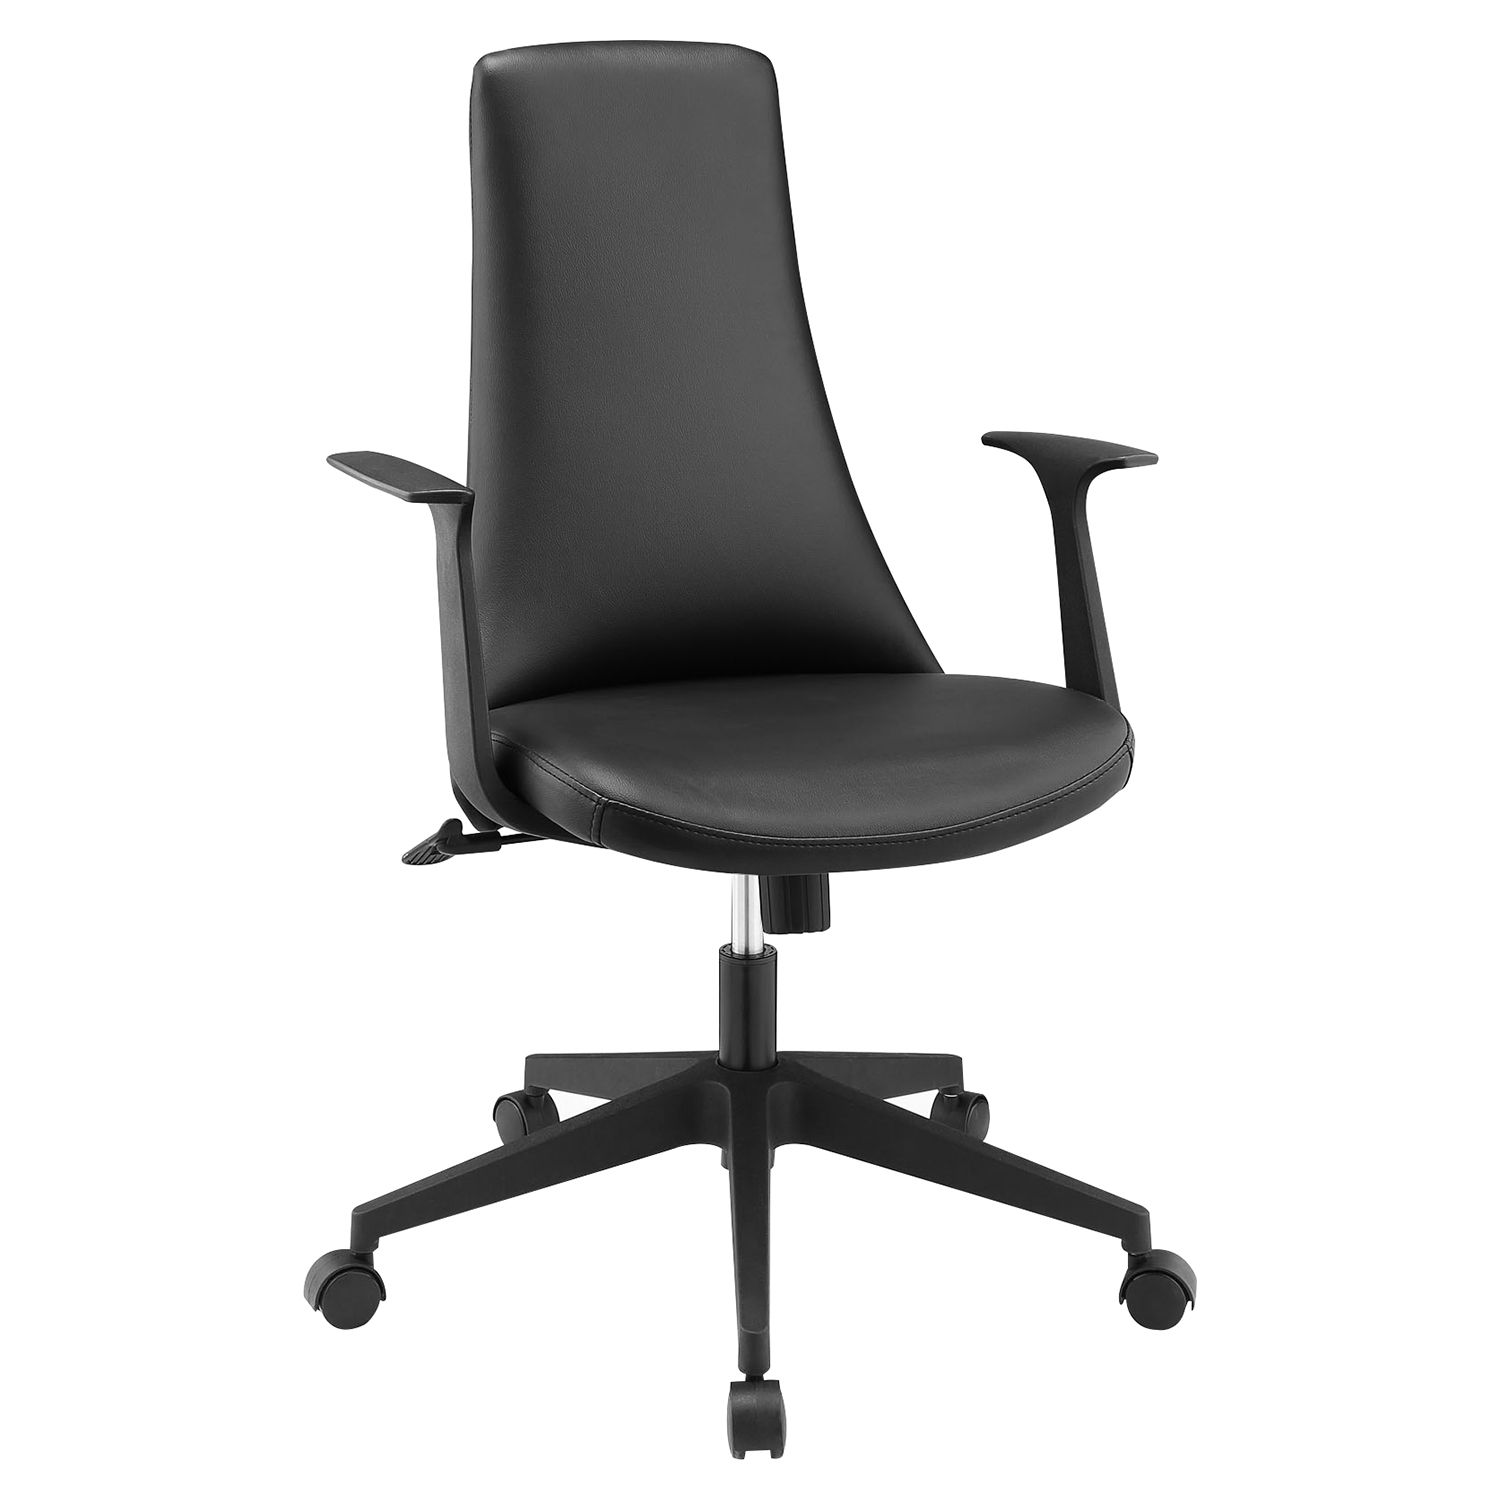 Fount Office Chair - Mid Back, Adjustable Height, Swivel, Armrest